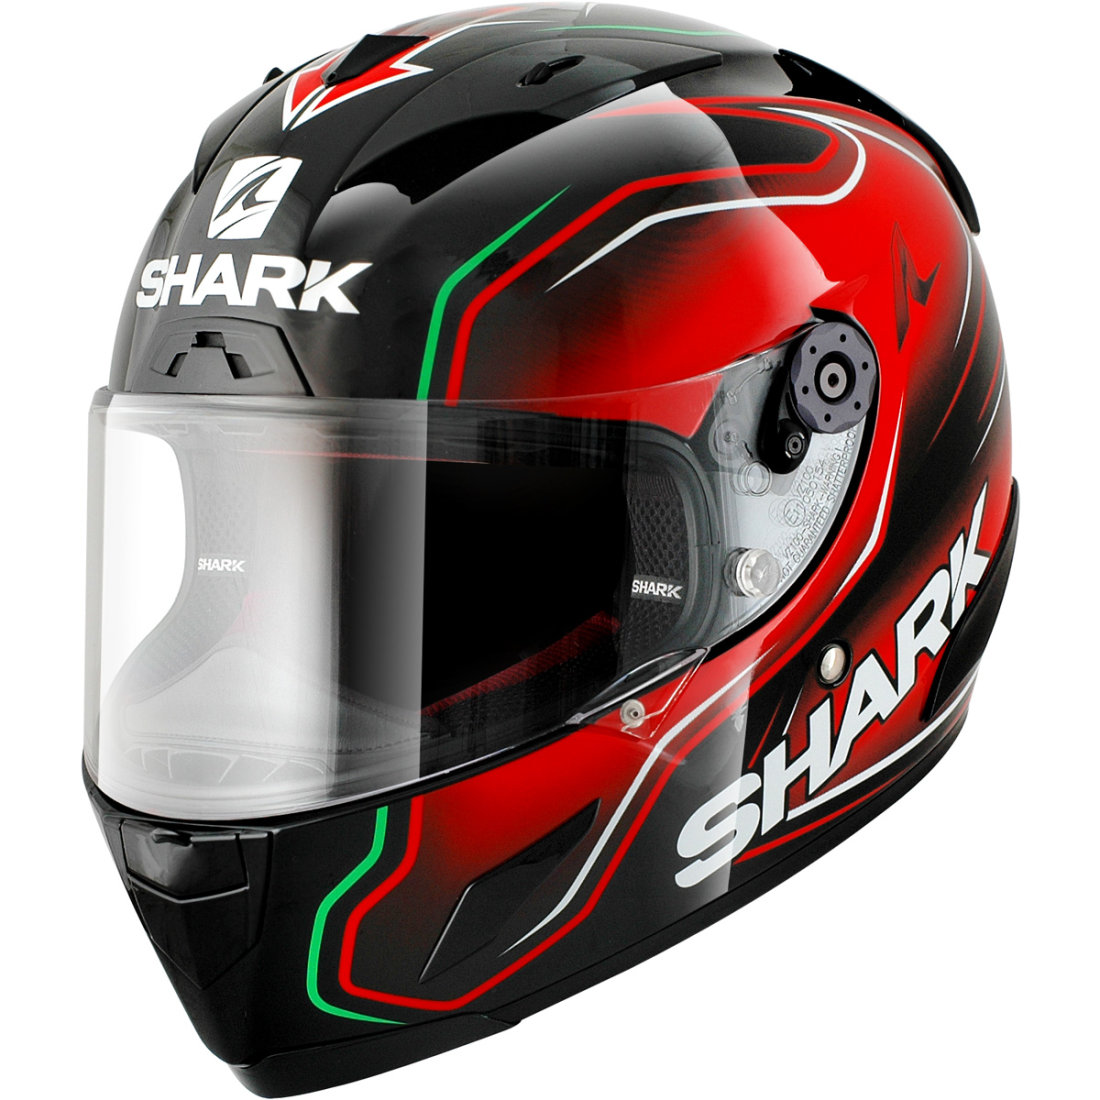 casque shark race r pro guintoli n r v motocard. Black Bedroom Furniture Sets. Home Design Ideas